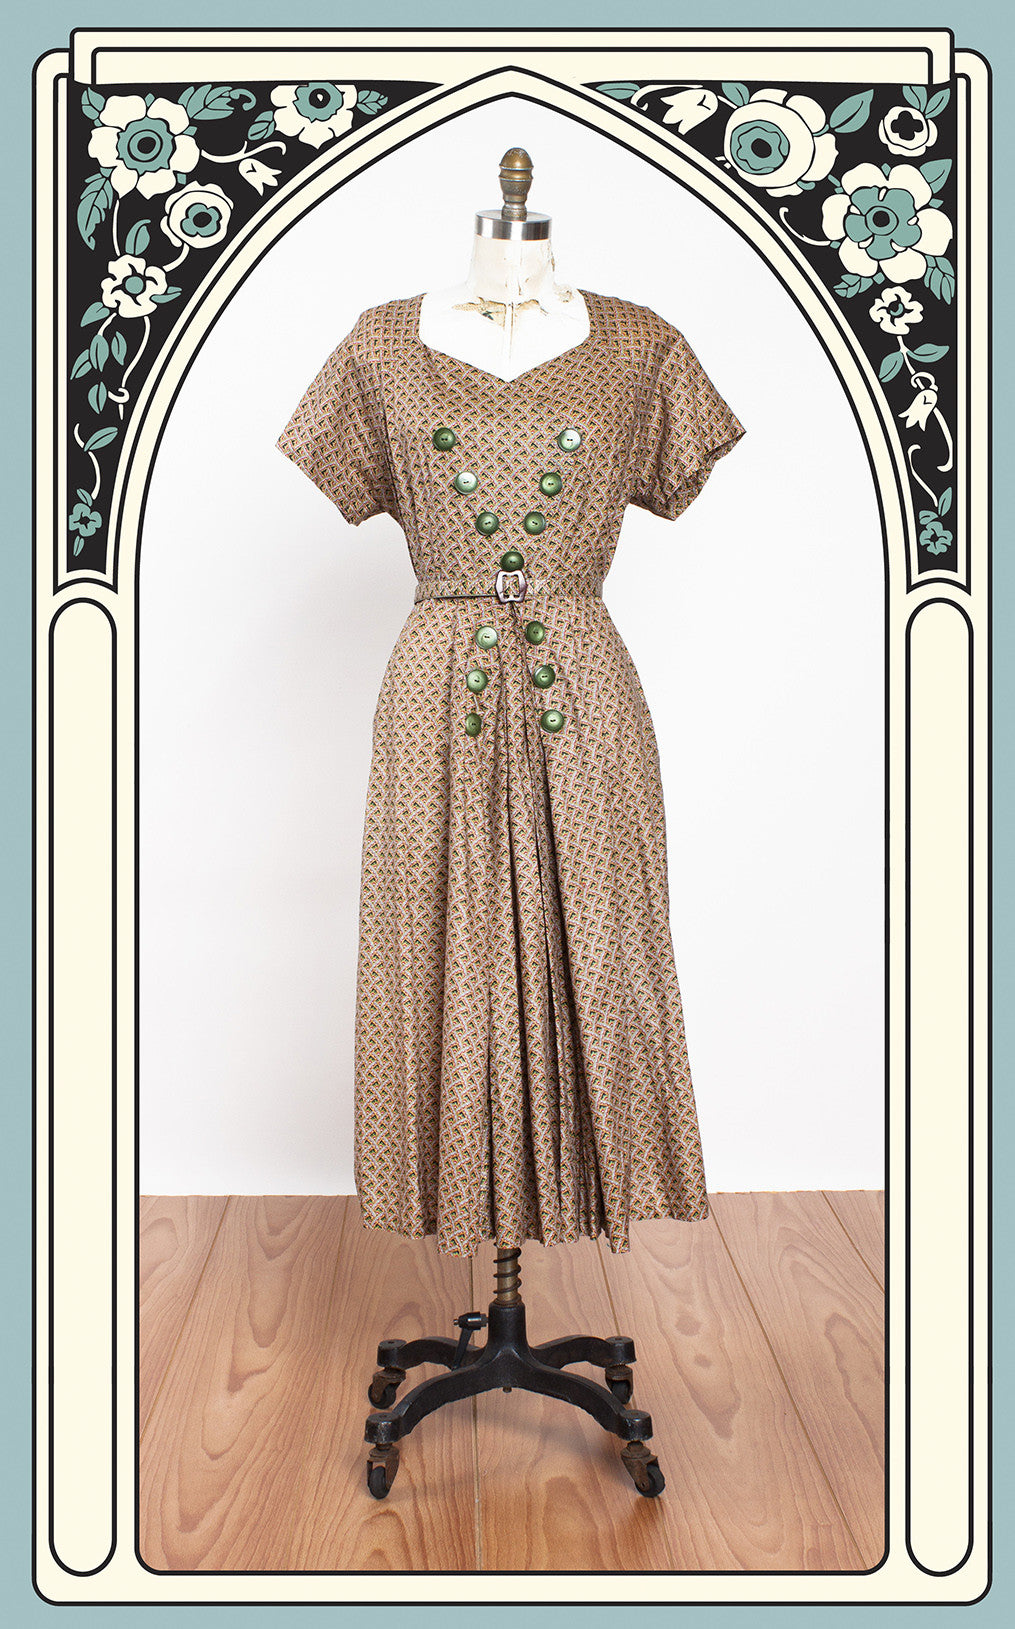 1940s Printed Cotton Day Dress with Sweetheart Neckline and Button Details - Voluptuous Size!